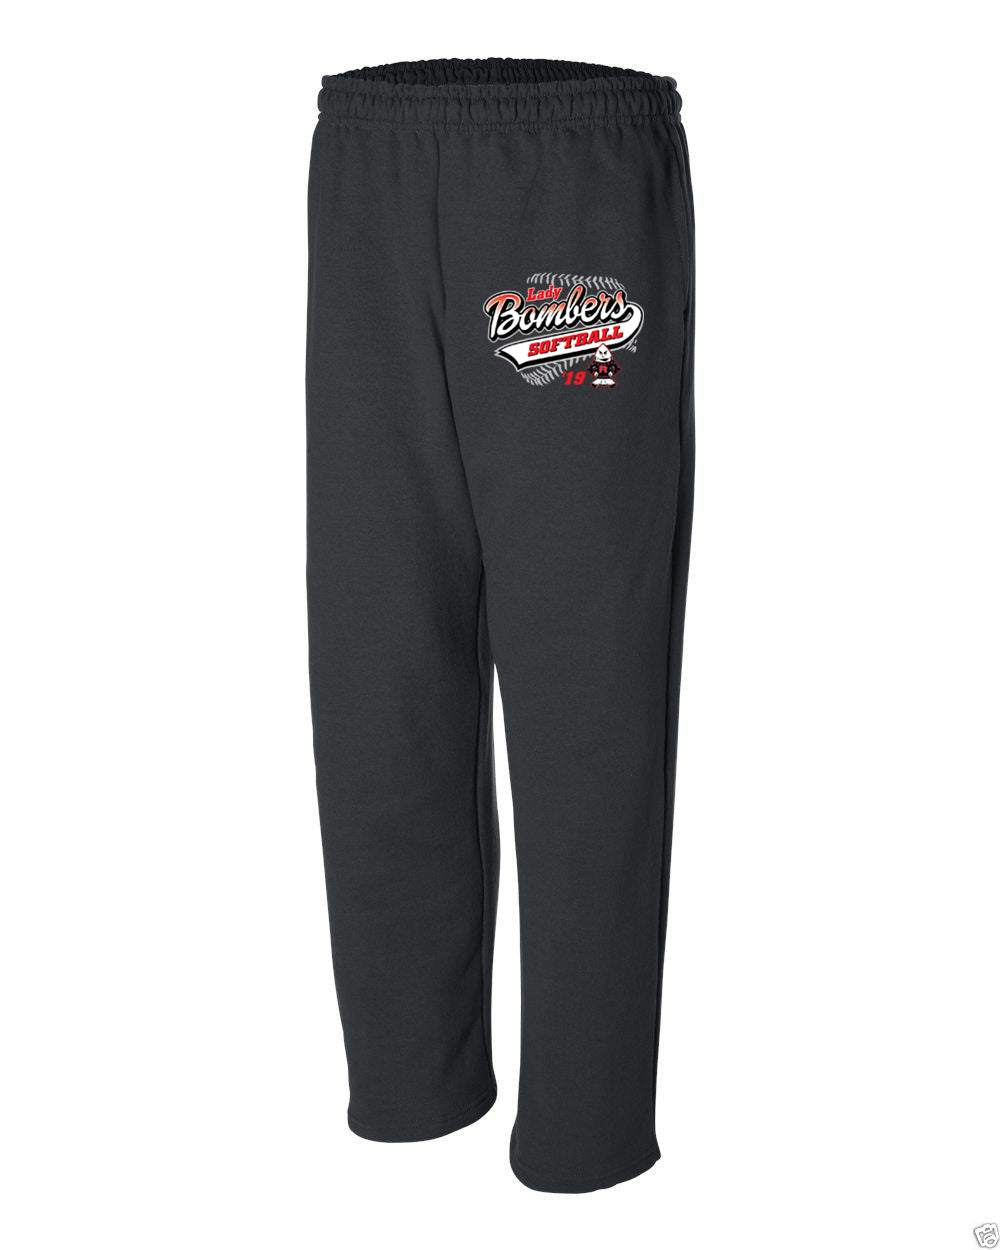 Bomber Softball Sweatpants